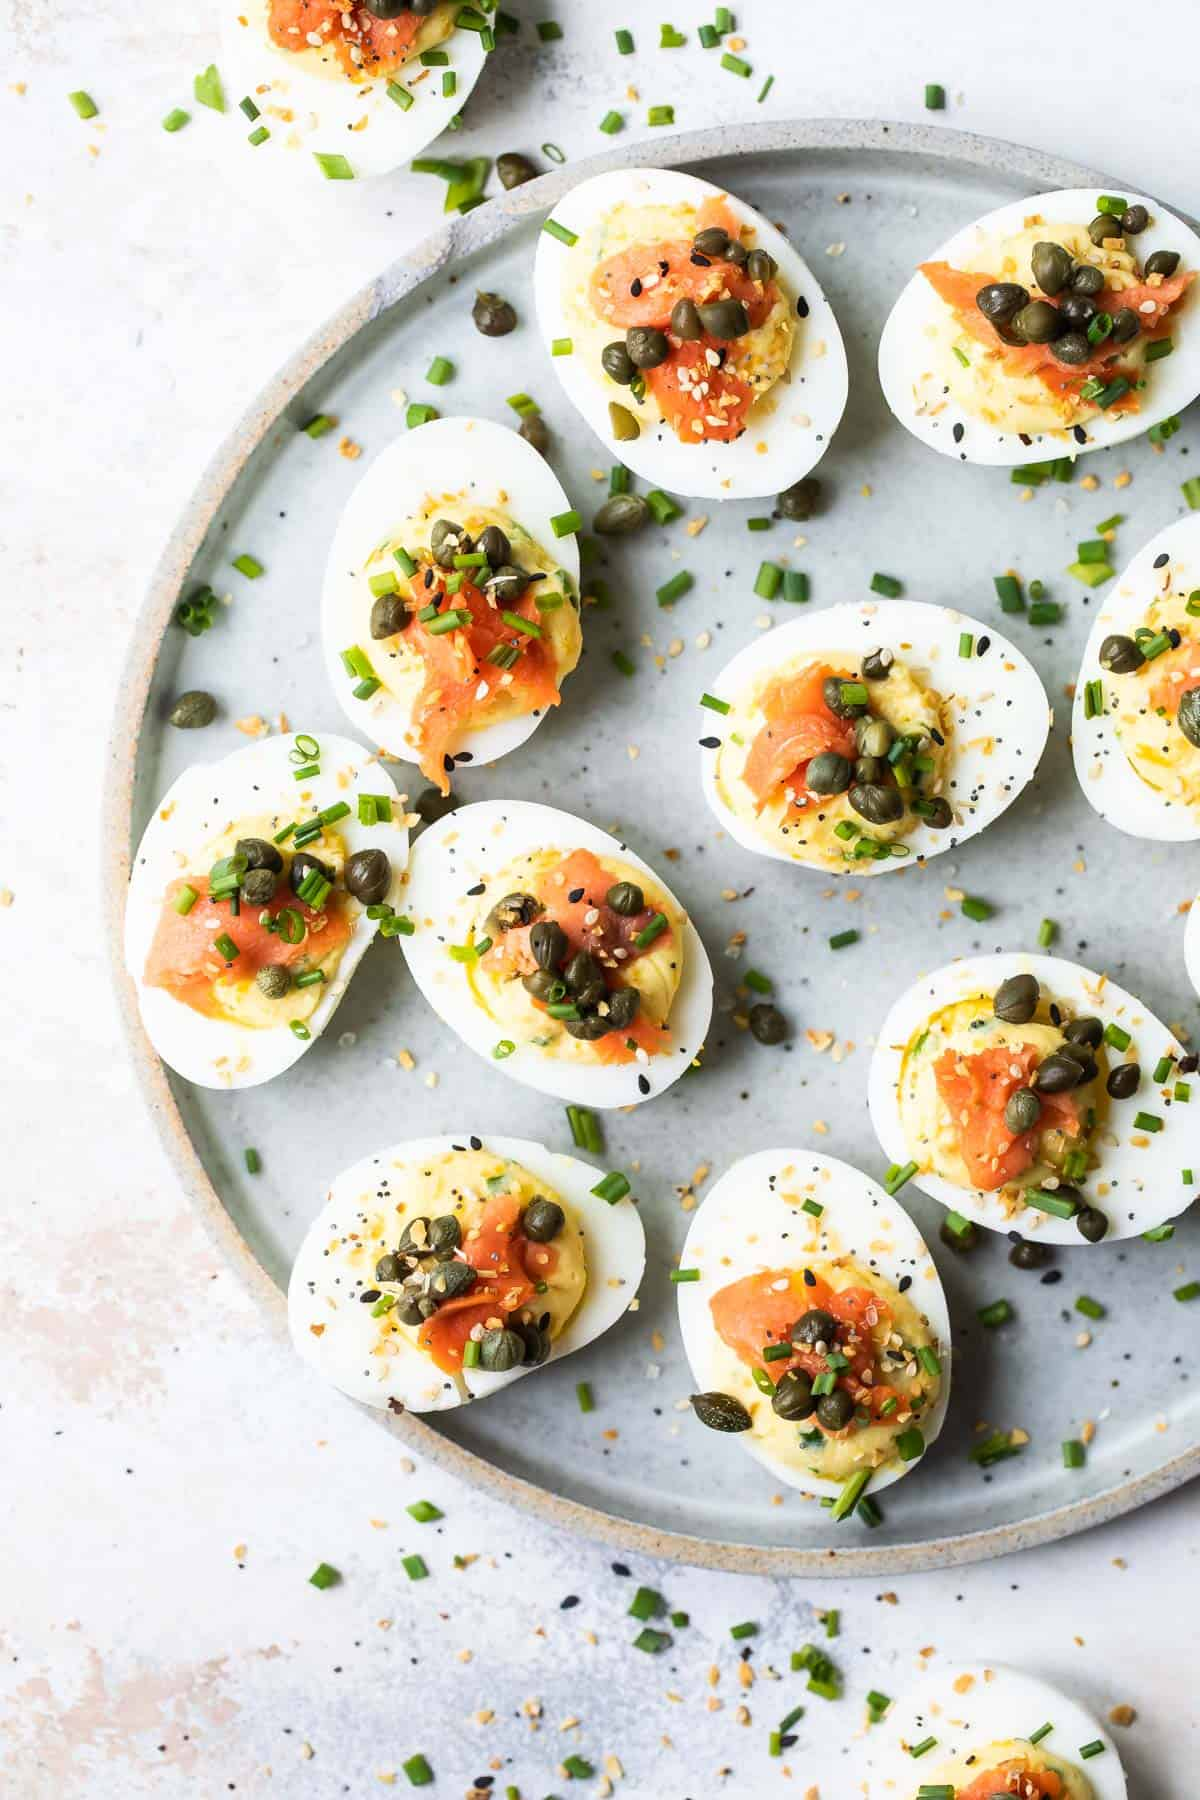 deviled eggs recipe with smoked salmon and capers